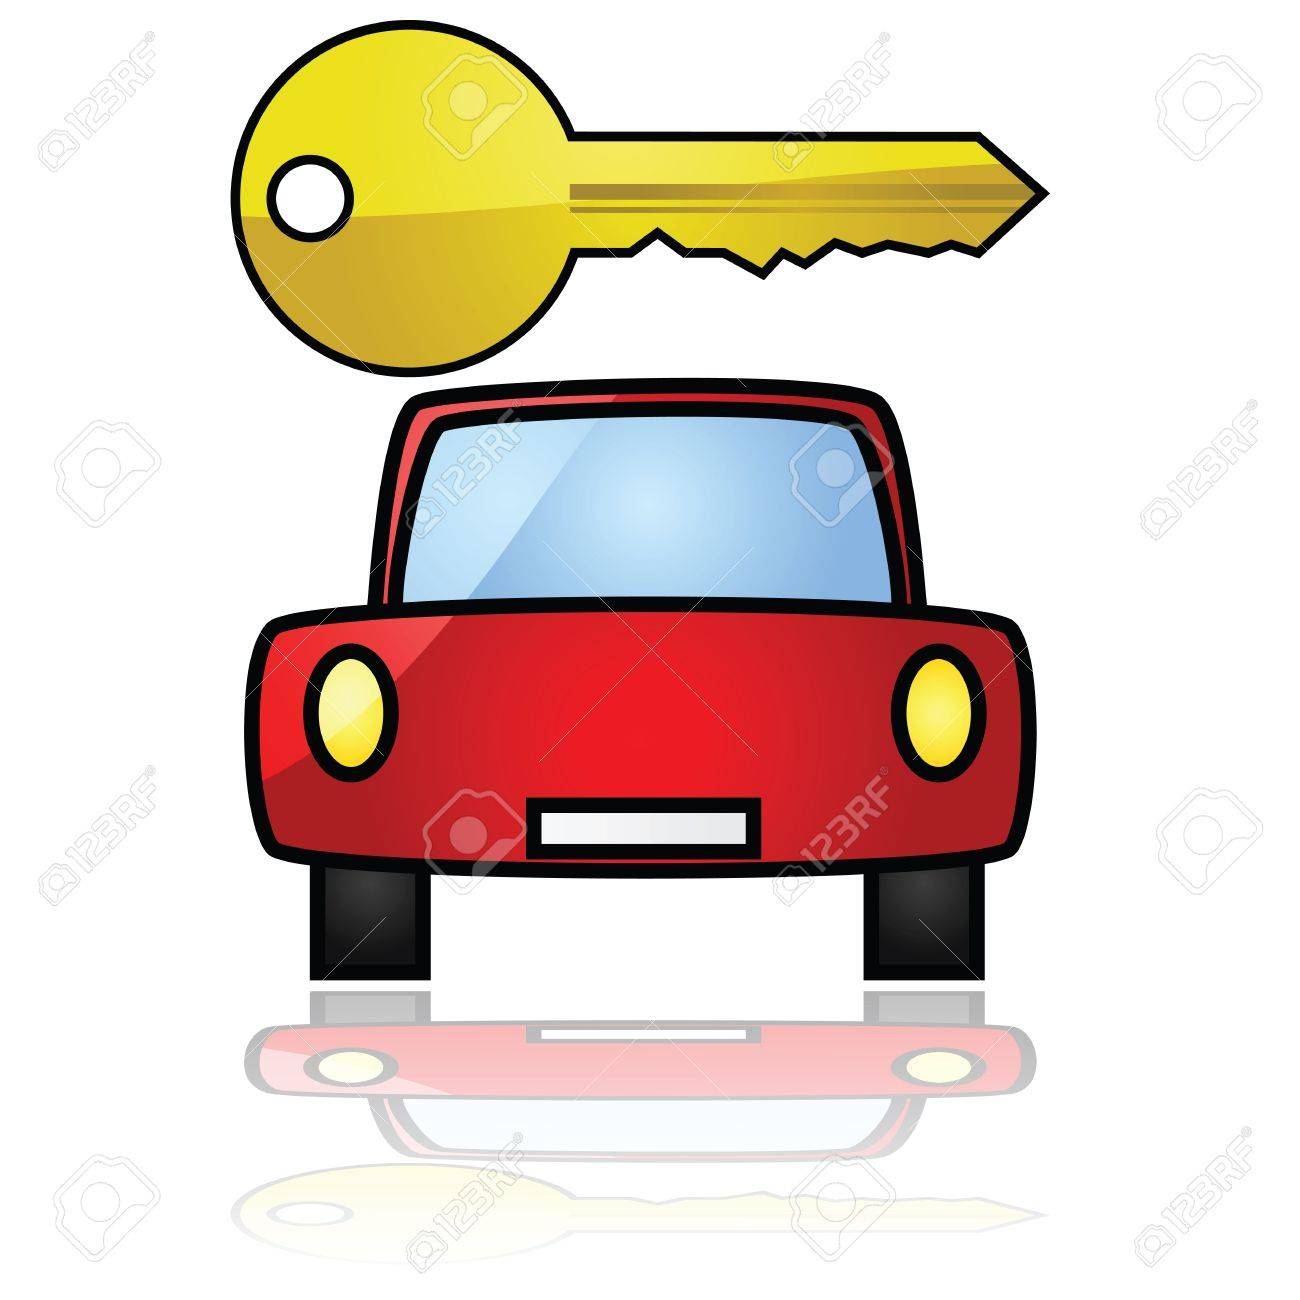 Glossy illustration showing a compact car with a key over it Stock Vector - 10085185